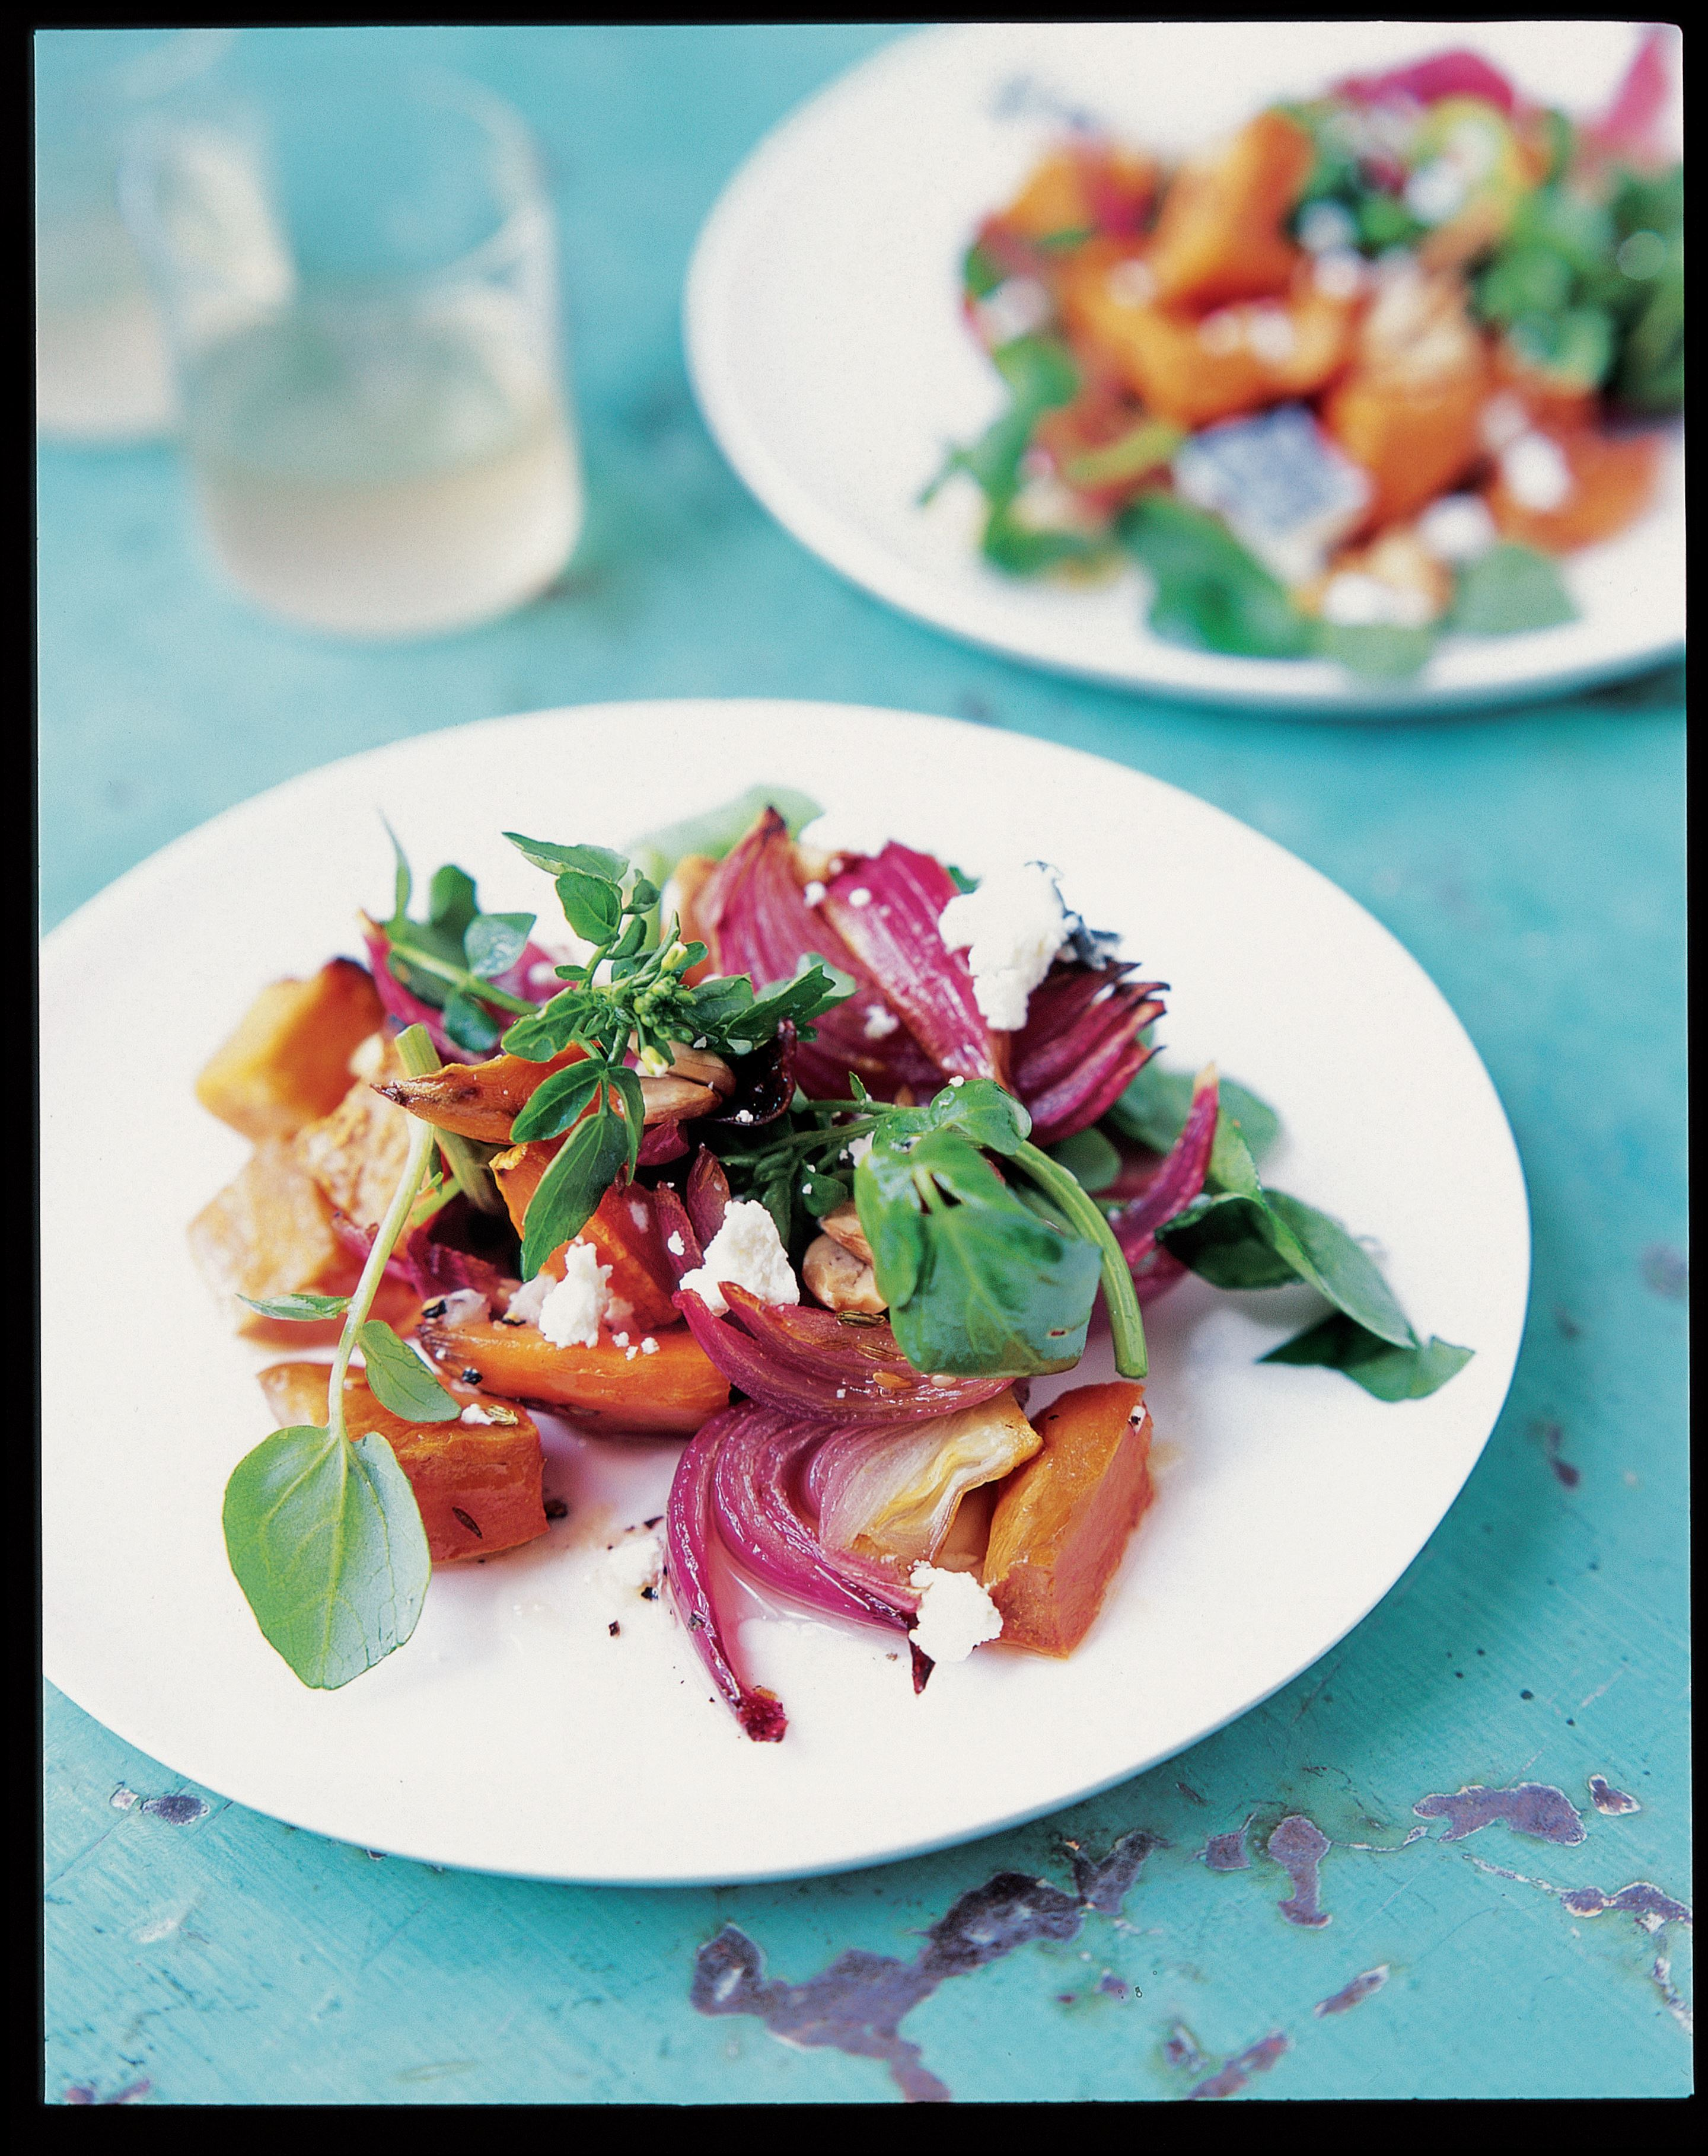 Warm sweet potato, rocket and goat's cheese salad